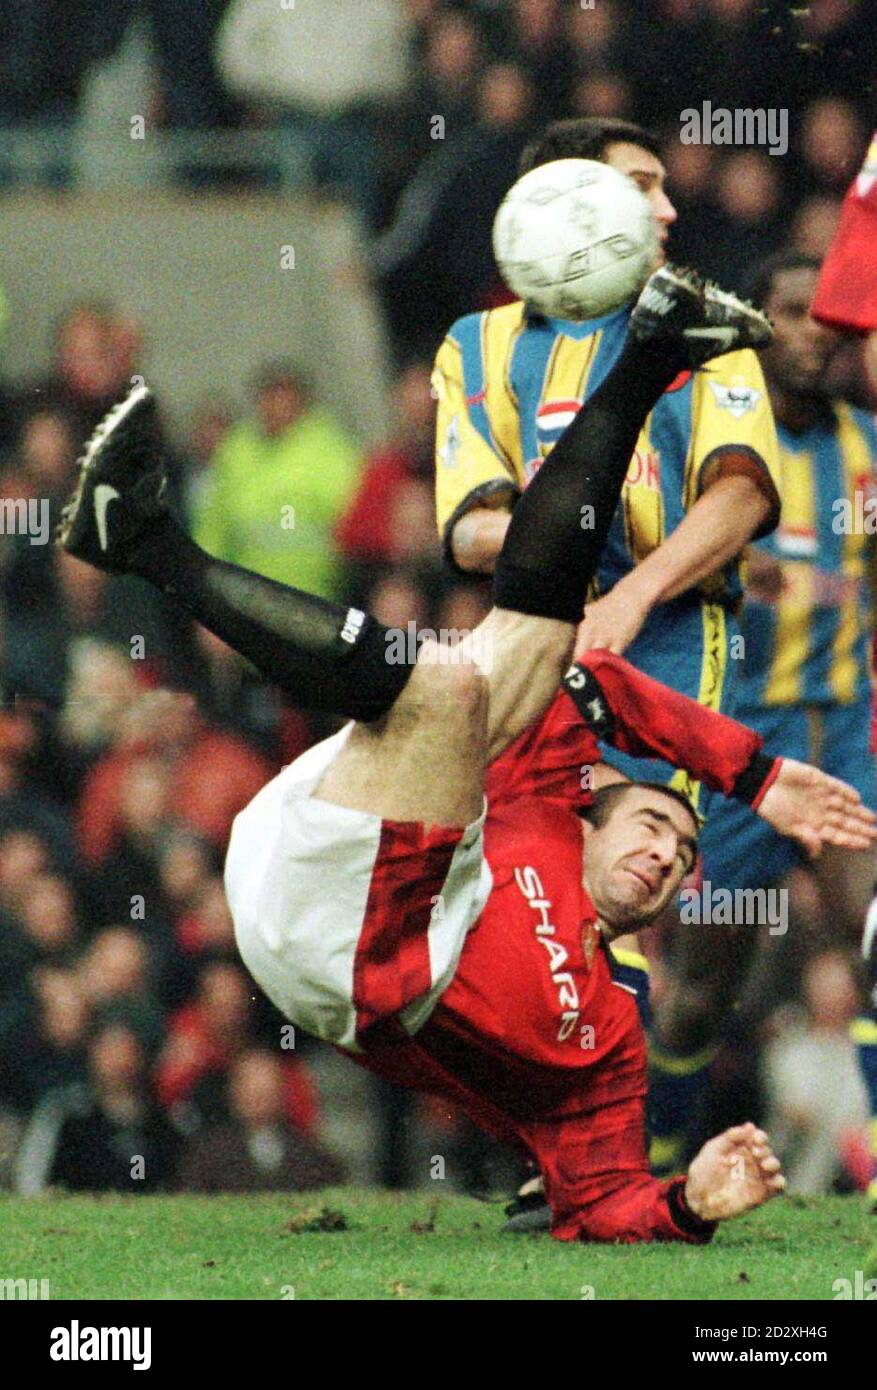 """I am not a role model"""" but for many of us that's precisely what he was and his response to. Manchester United S Eric Cantona Attempts An Overhead Kick On The Edge Of The Box During Their Match Against Southampton At Old Trafford Stock Photo Alamy"""